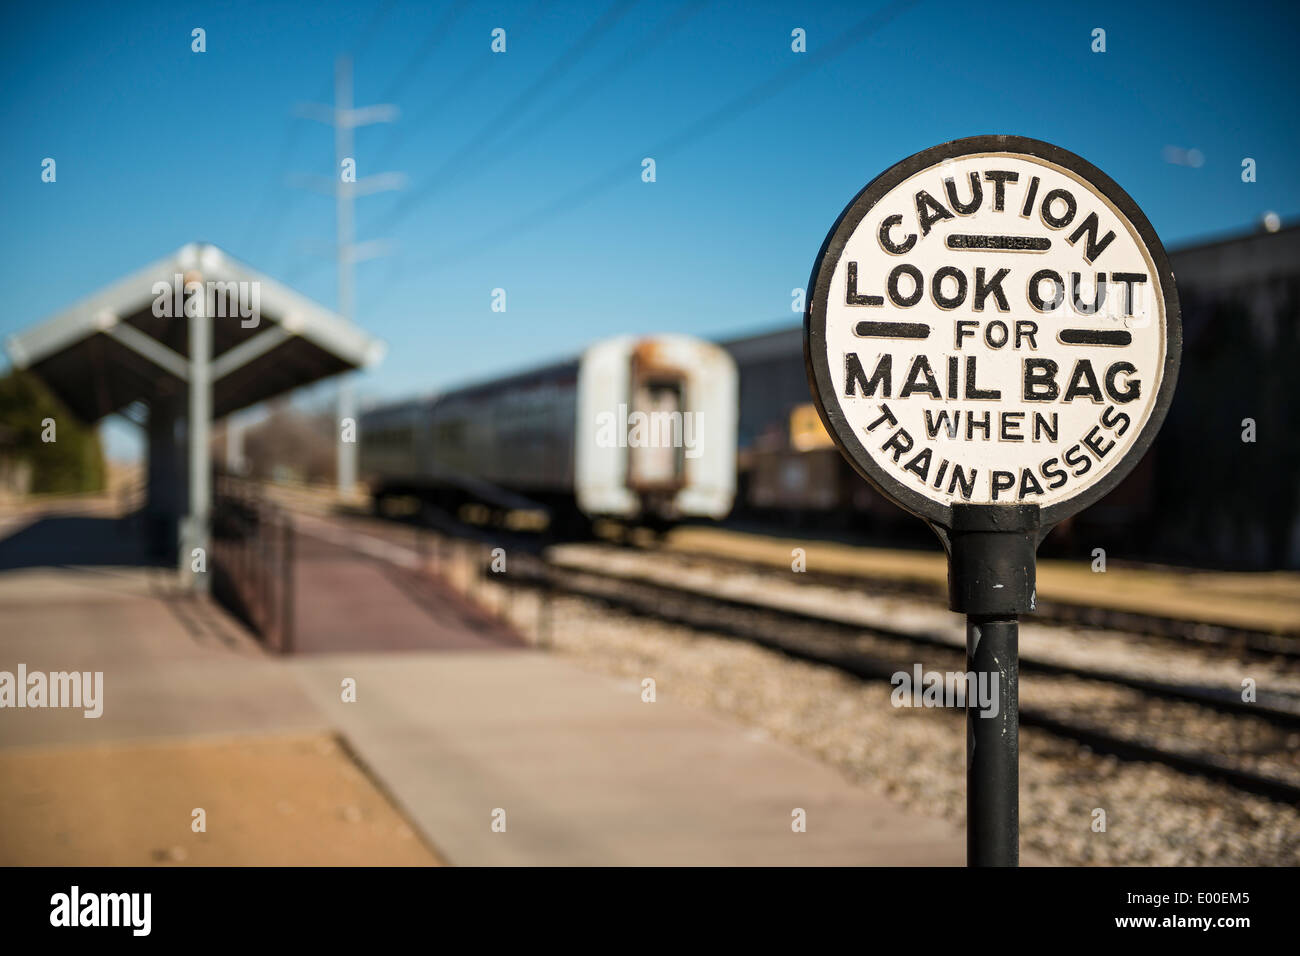 Old rail sign warning of passing mail bags on trains. - Stock Image